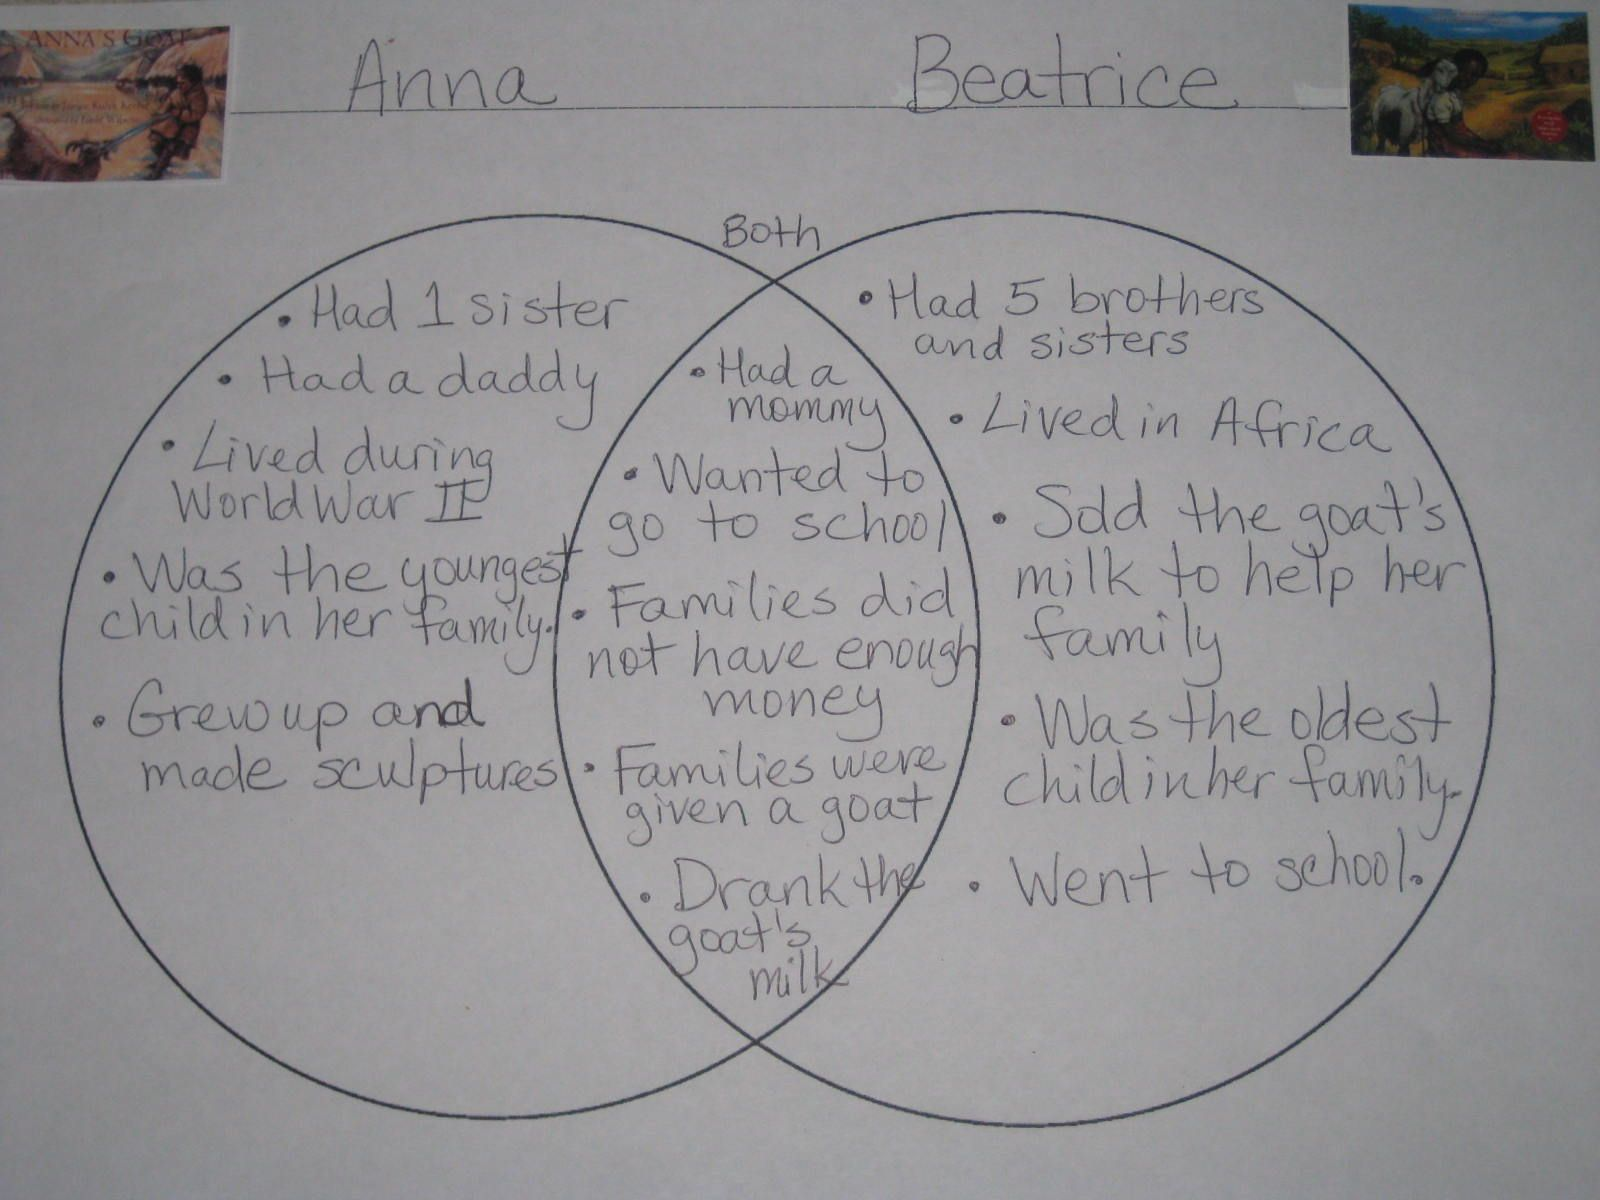 small resolution of for goat or farm animal unit read these two non fiction books anna s goat by janice keefer beatrice s goat by page mcbrier then do a venn diagram for